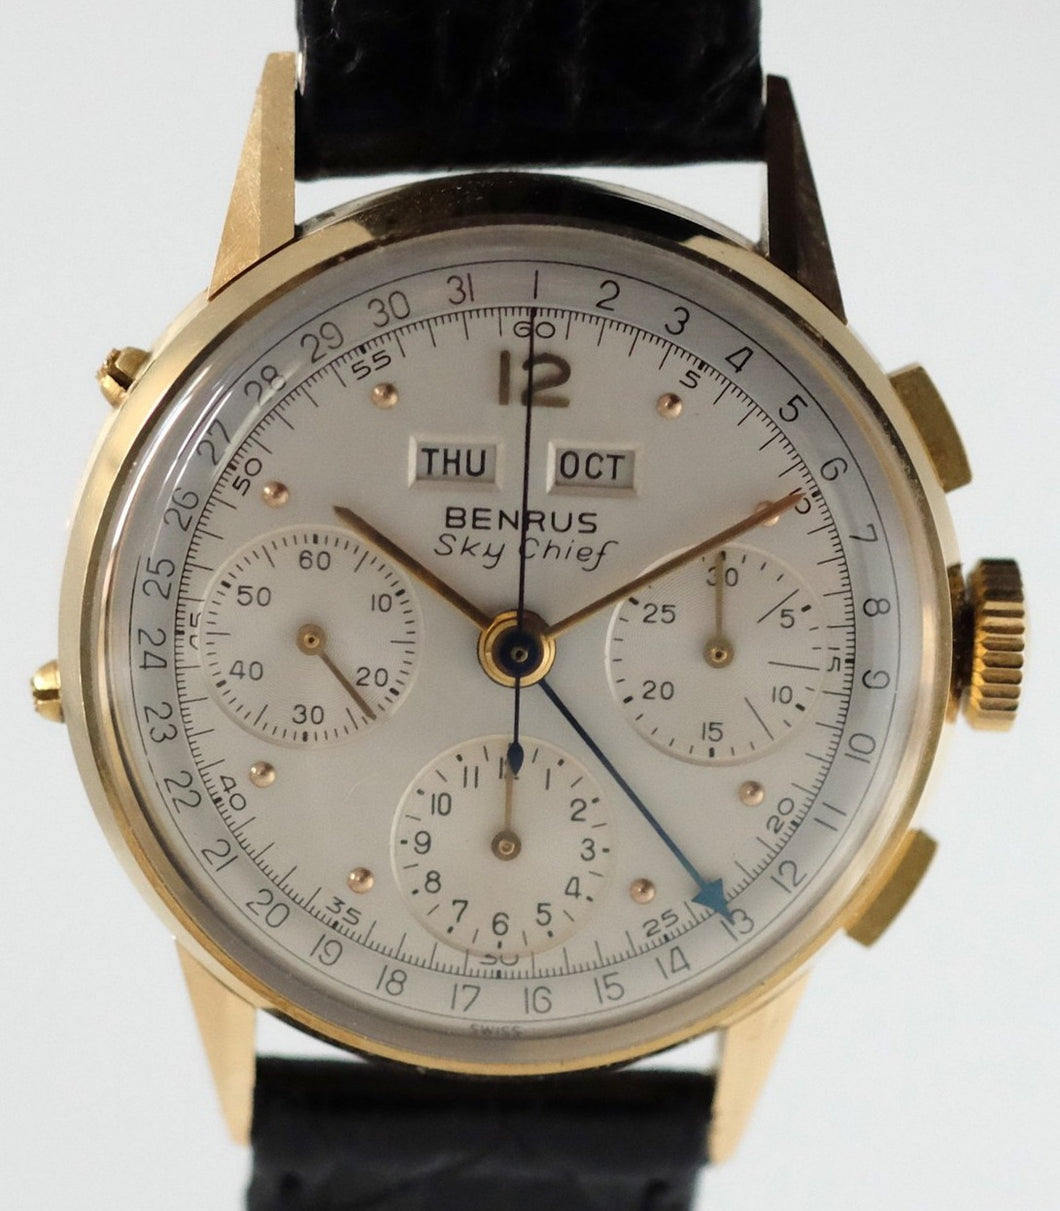 Benrus Sky Chief 14k Gold Triple Date Chronograph